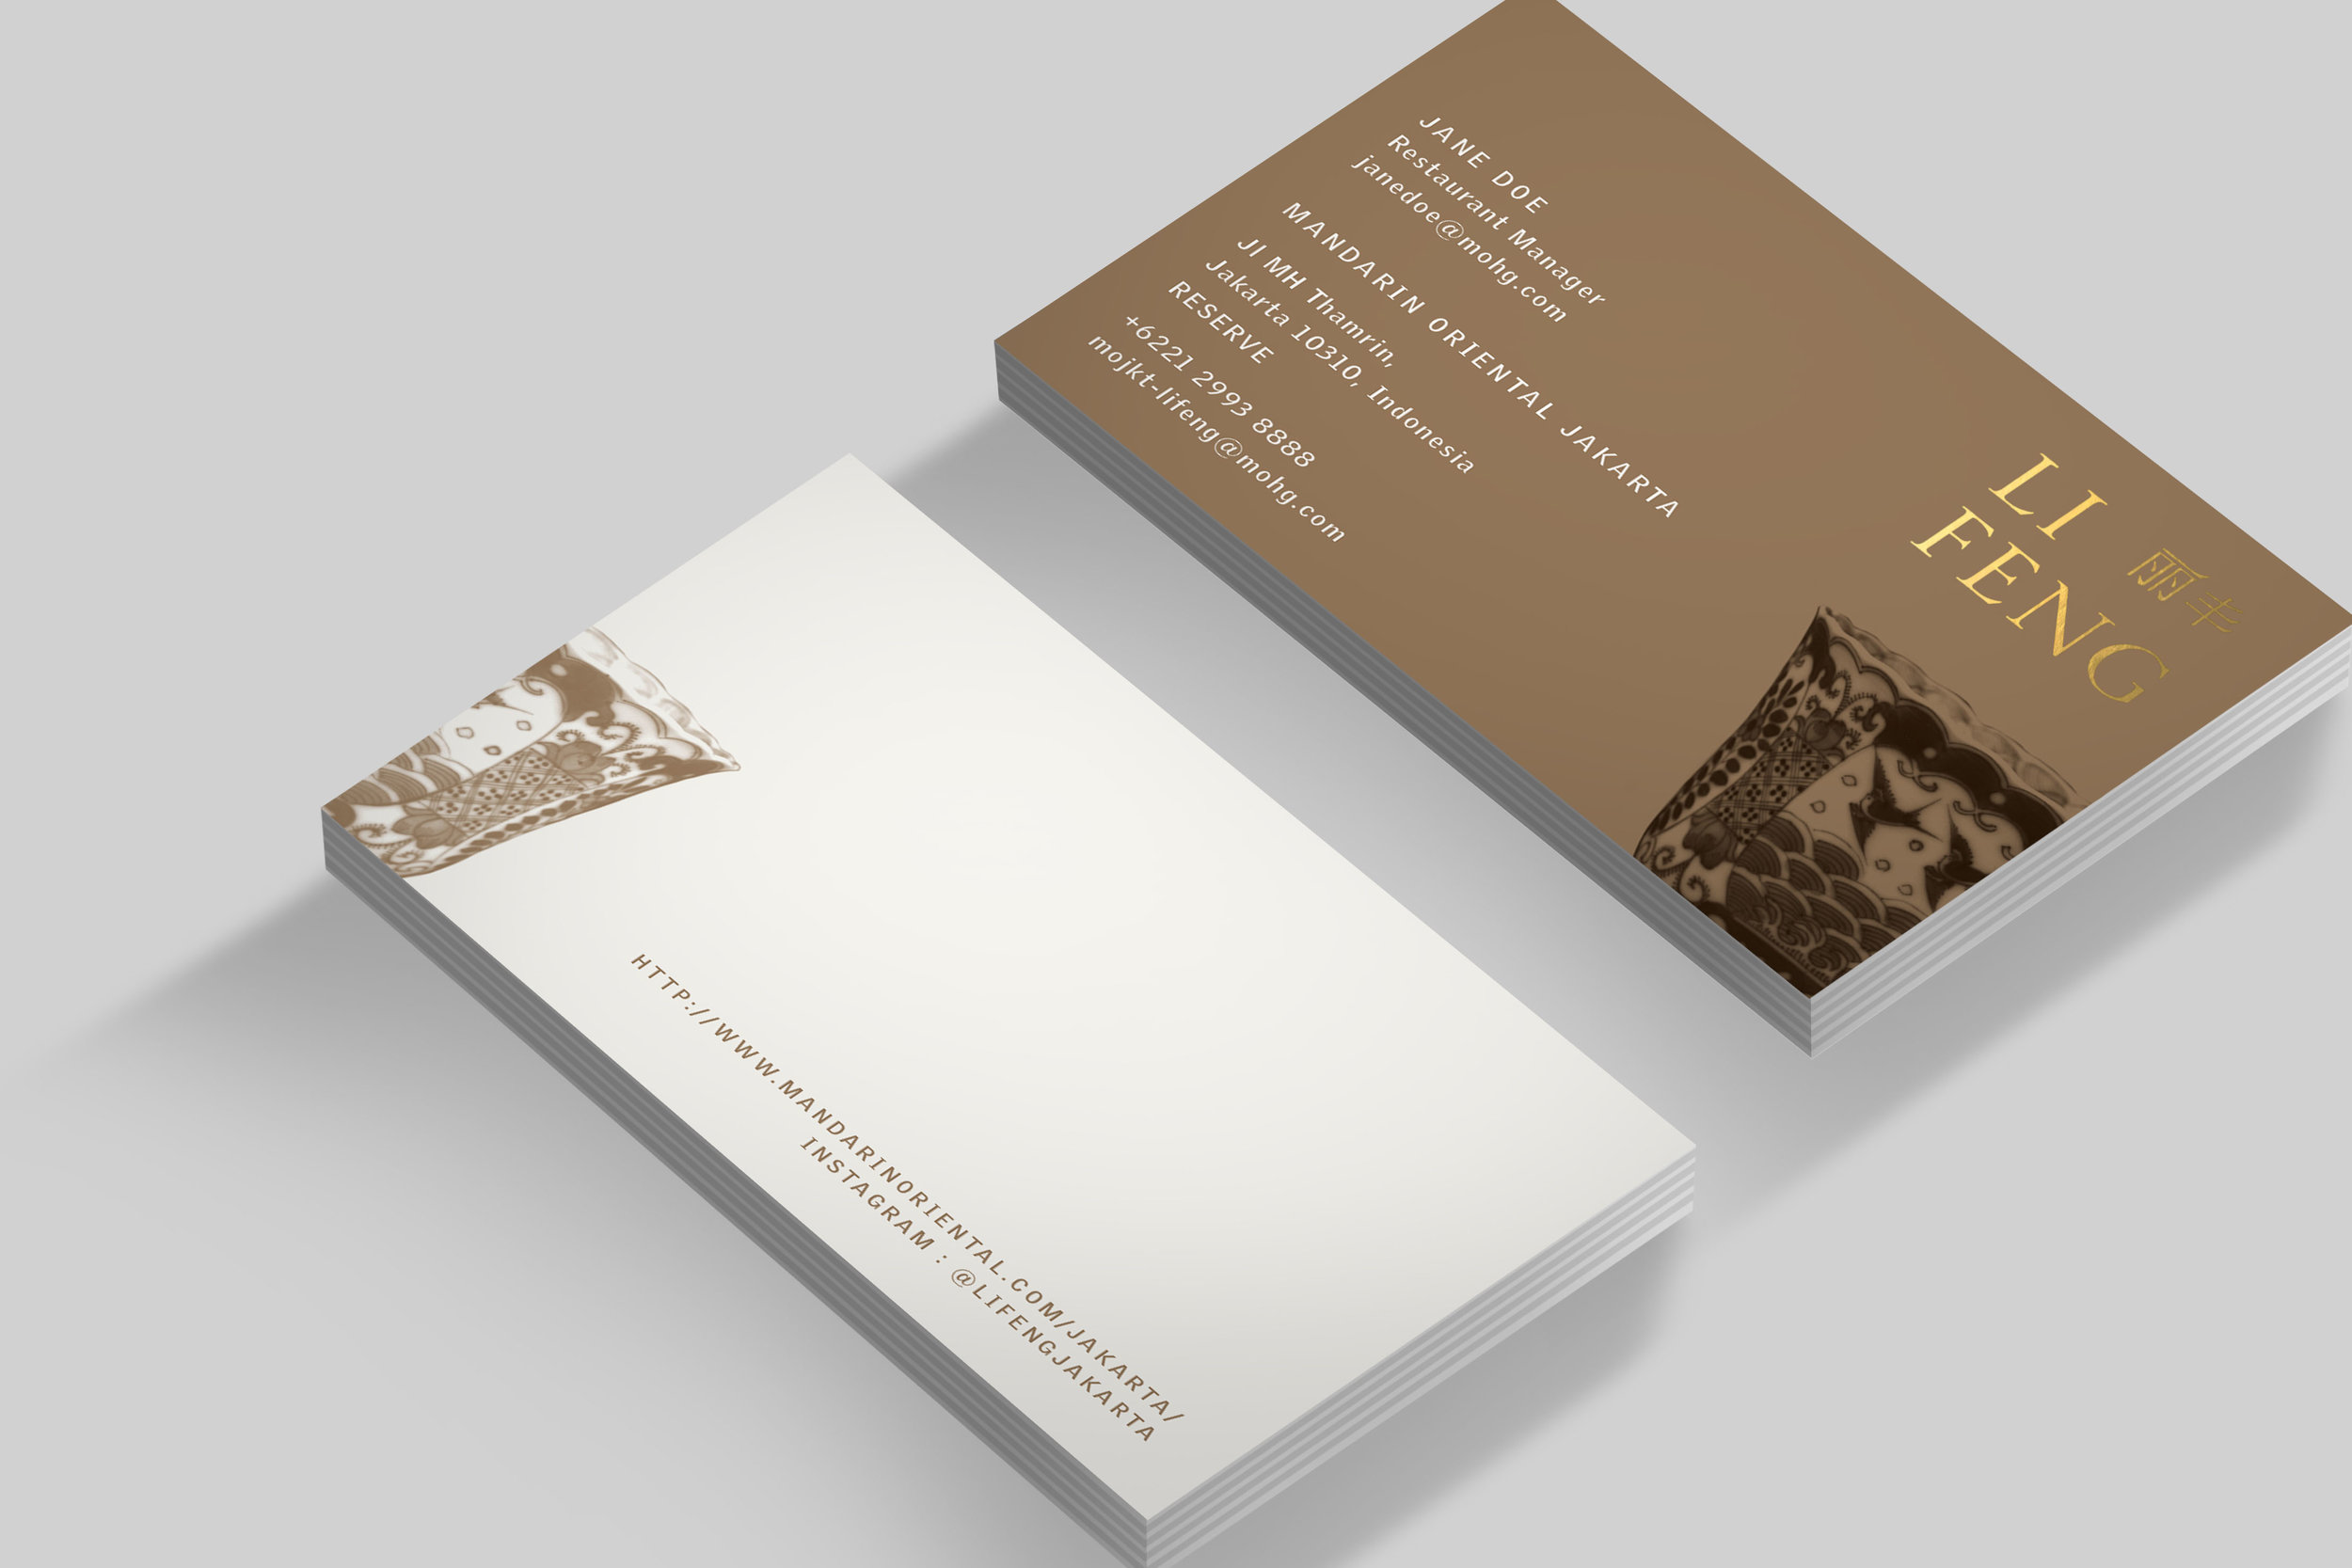 LiFeng Stationary Preview 02.jpg